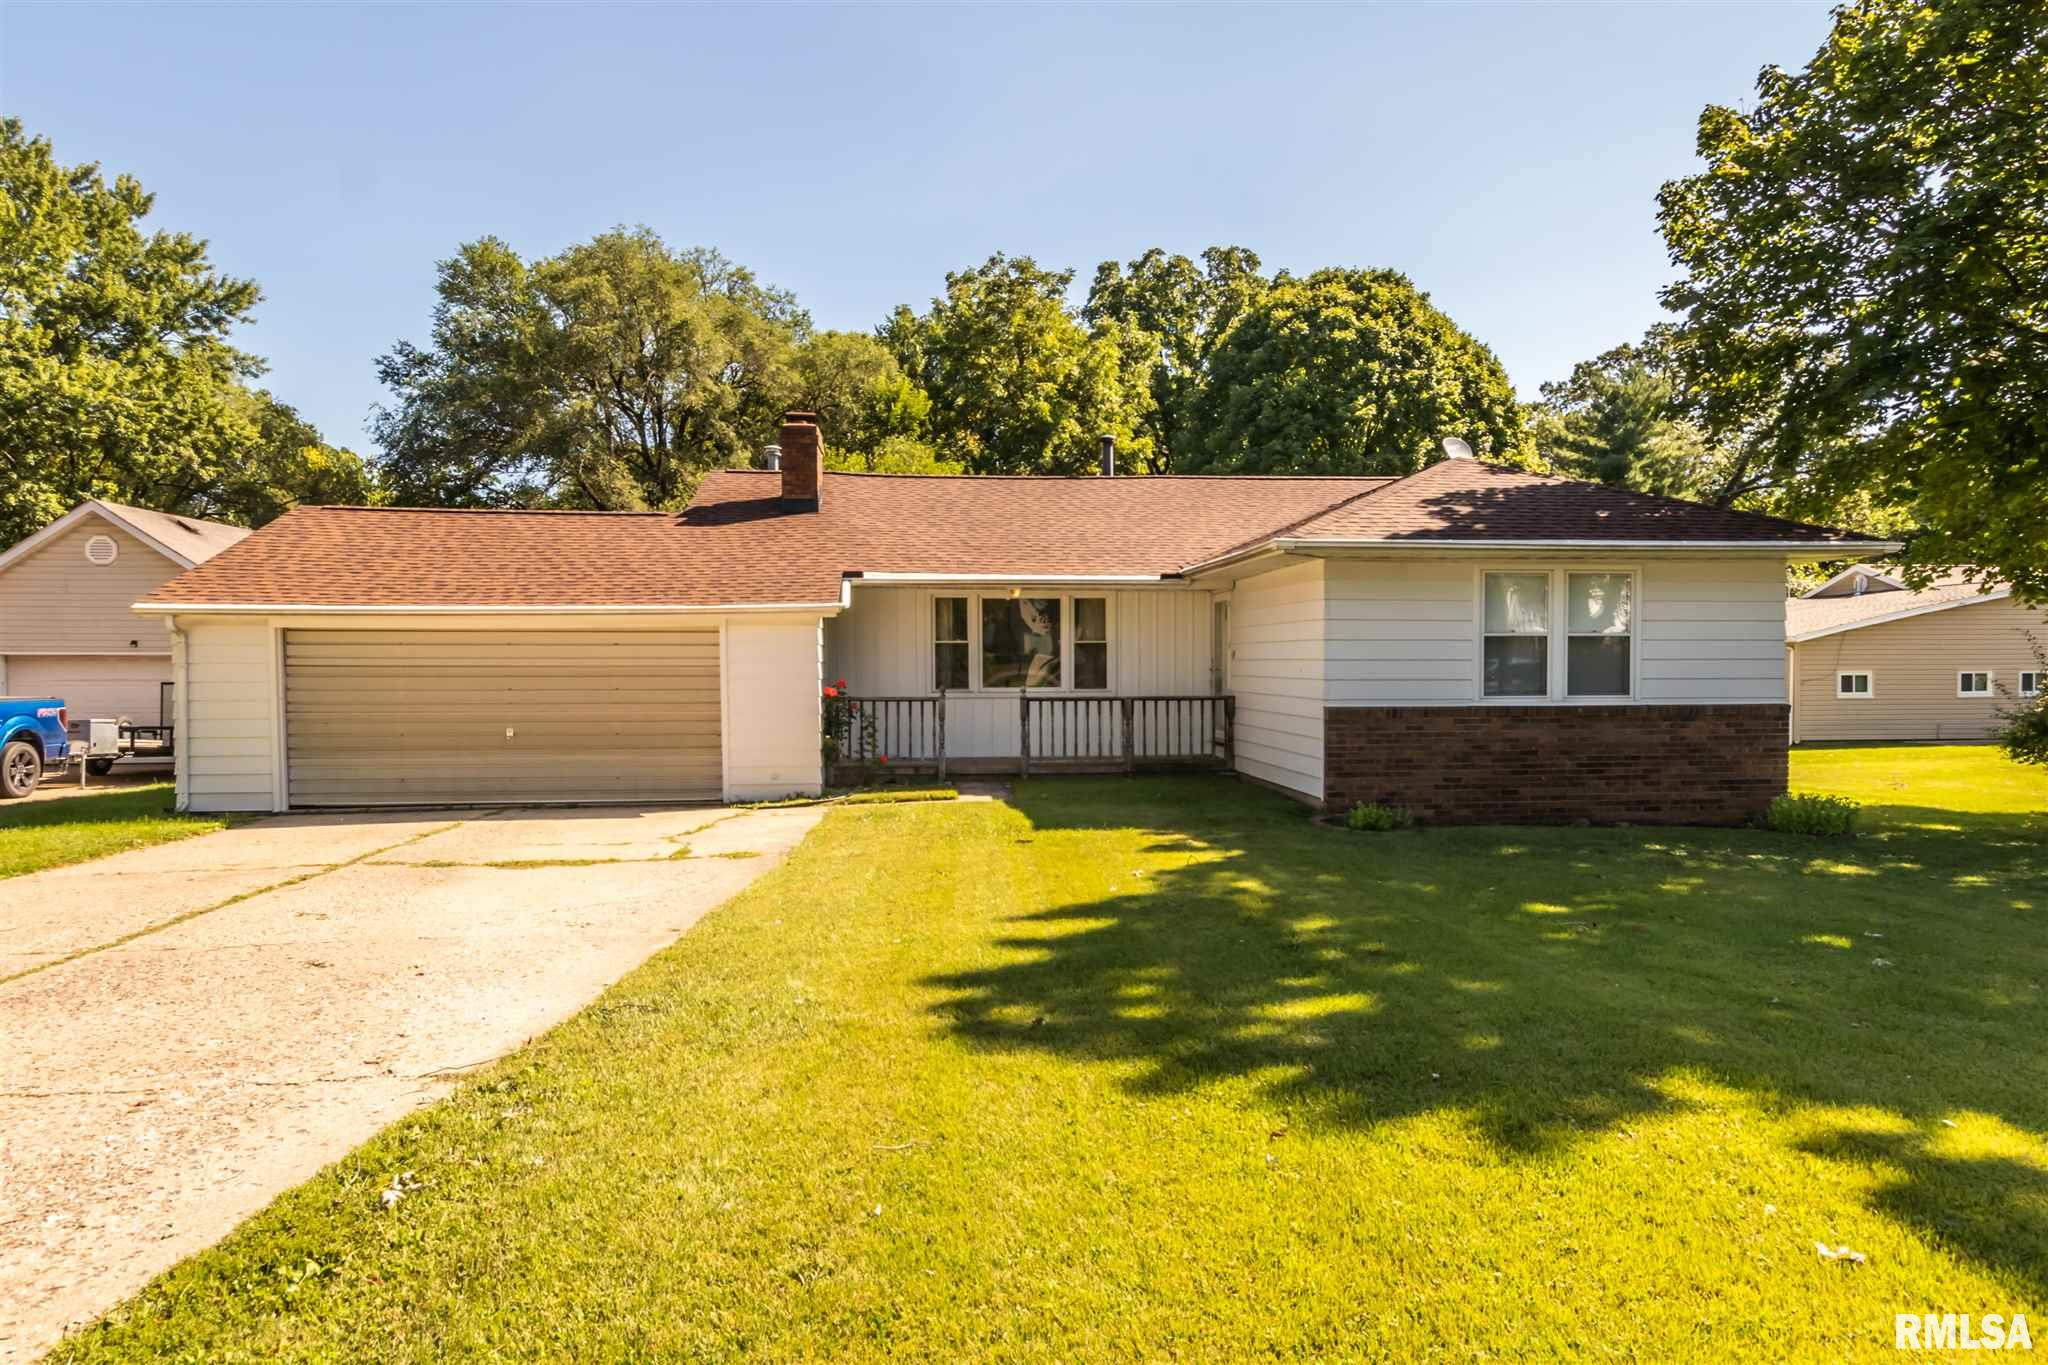 4413 W RUSSELL Property Photo - Peoria, IL real estate listing